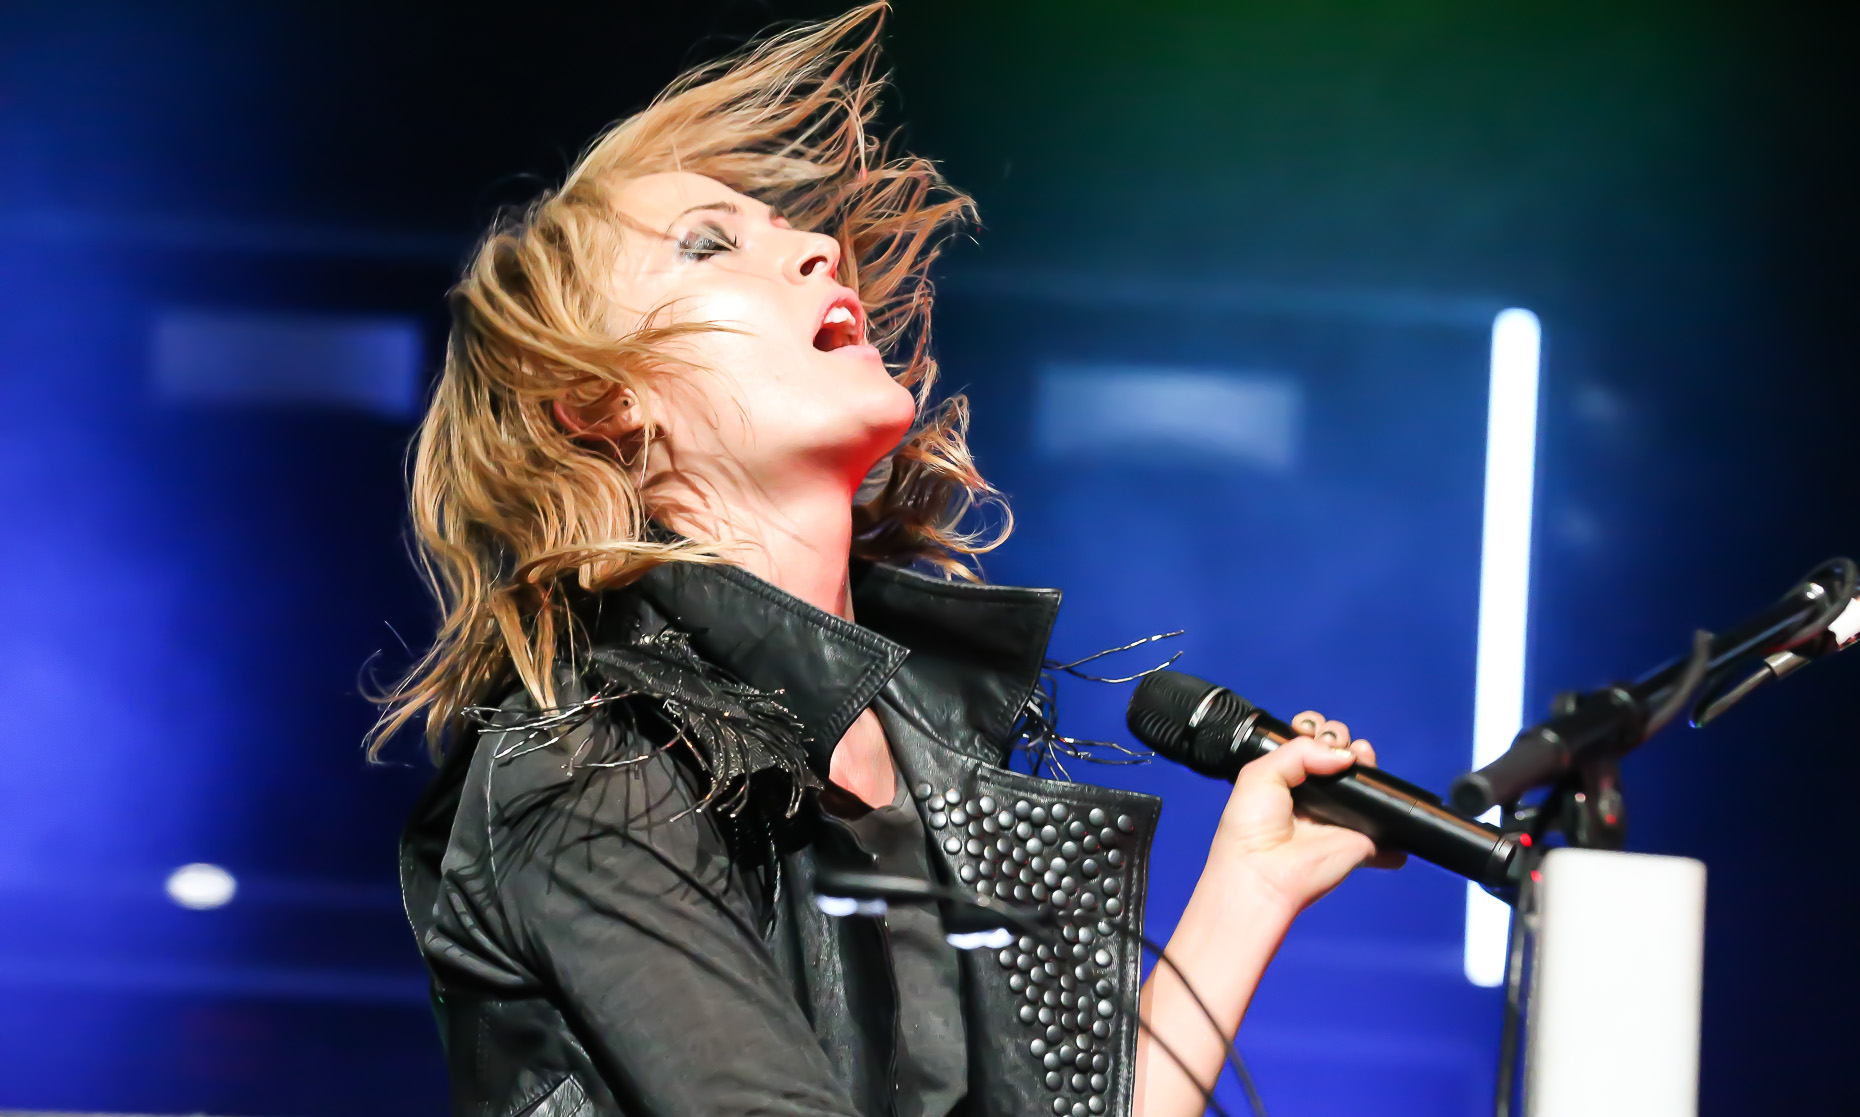 Emily Haines by music photographer Deborah Lowery